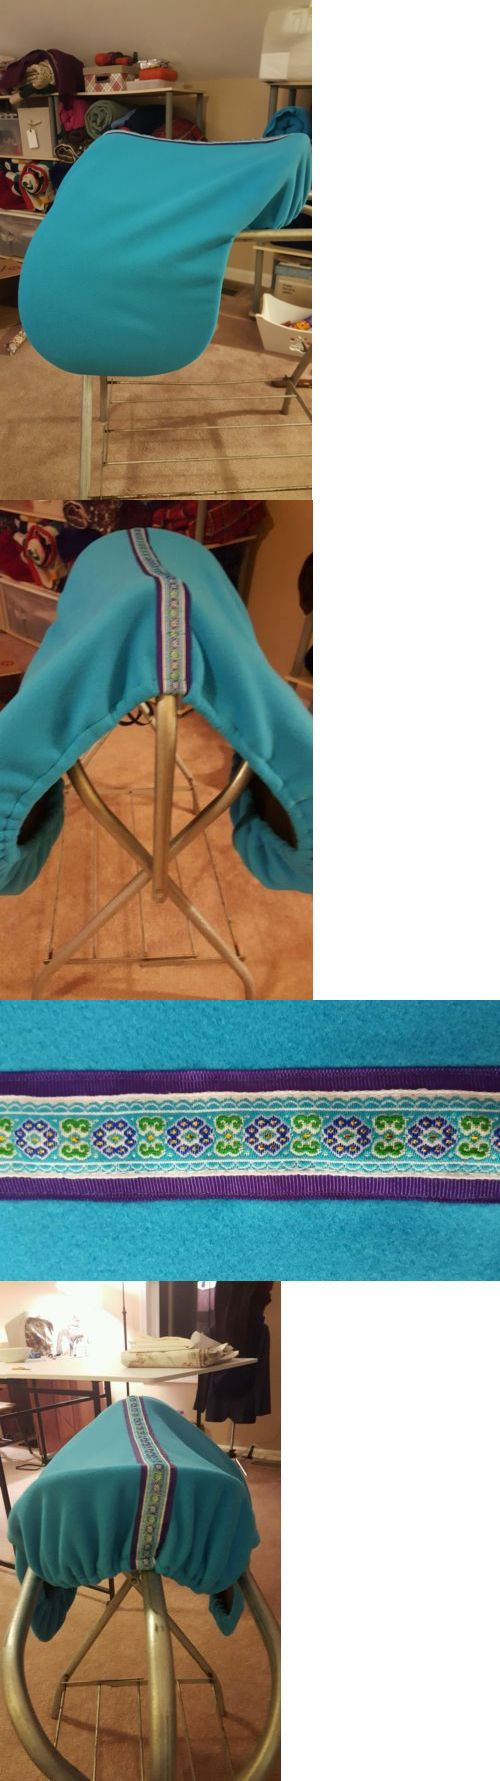 Saddle Covers 179000: English Saddle Cover- Turquoise With Pretty Ribbon Trim- Handmade -> BUY IT NOW ONLY: $30 on eBay!